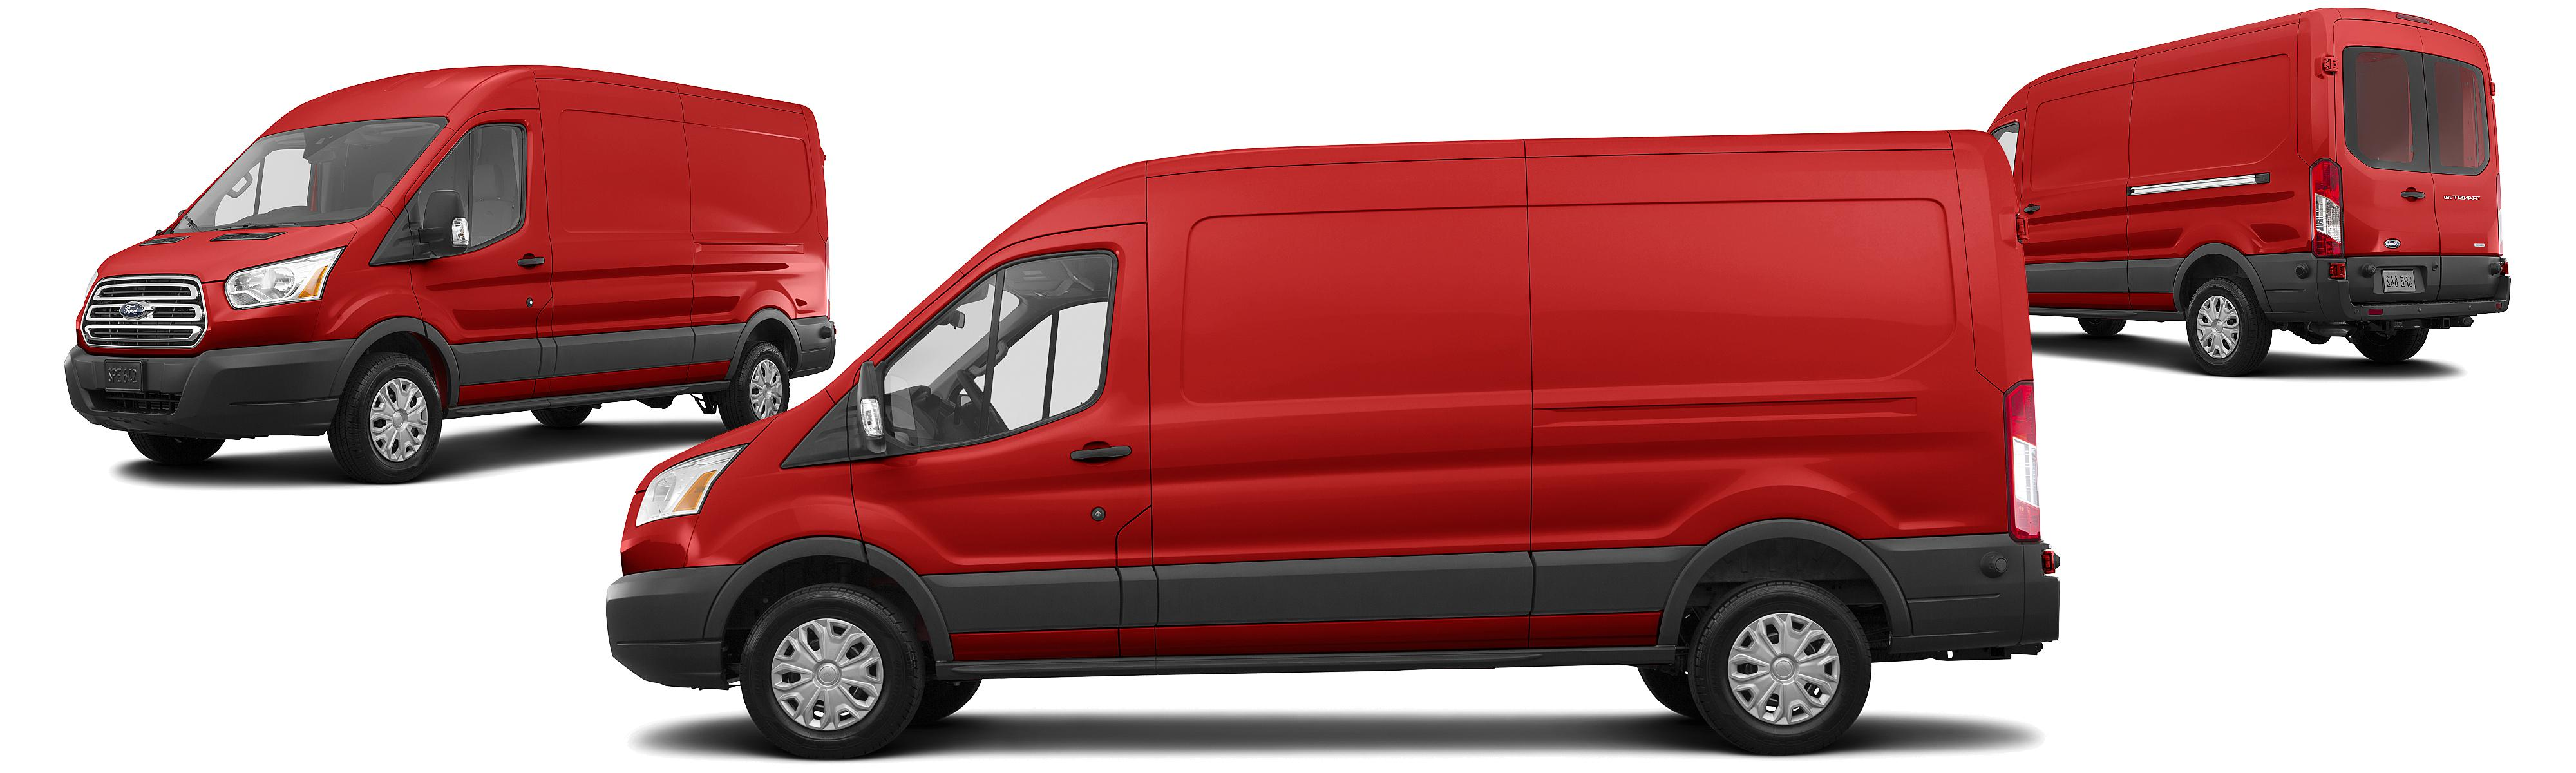 ford transit 250 high roof extended best ford foto in the word. Black Bedroom Furniture Sets. Home Design Ideas